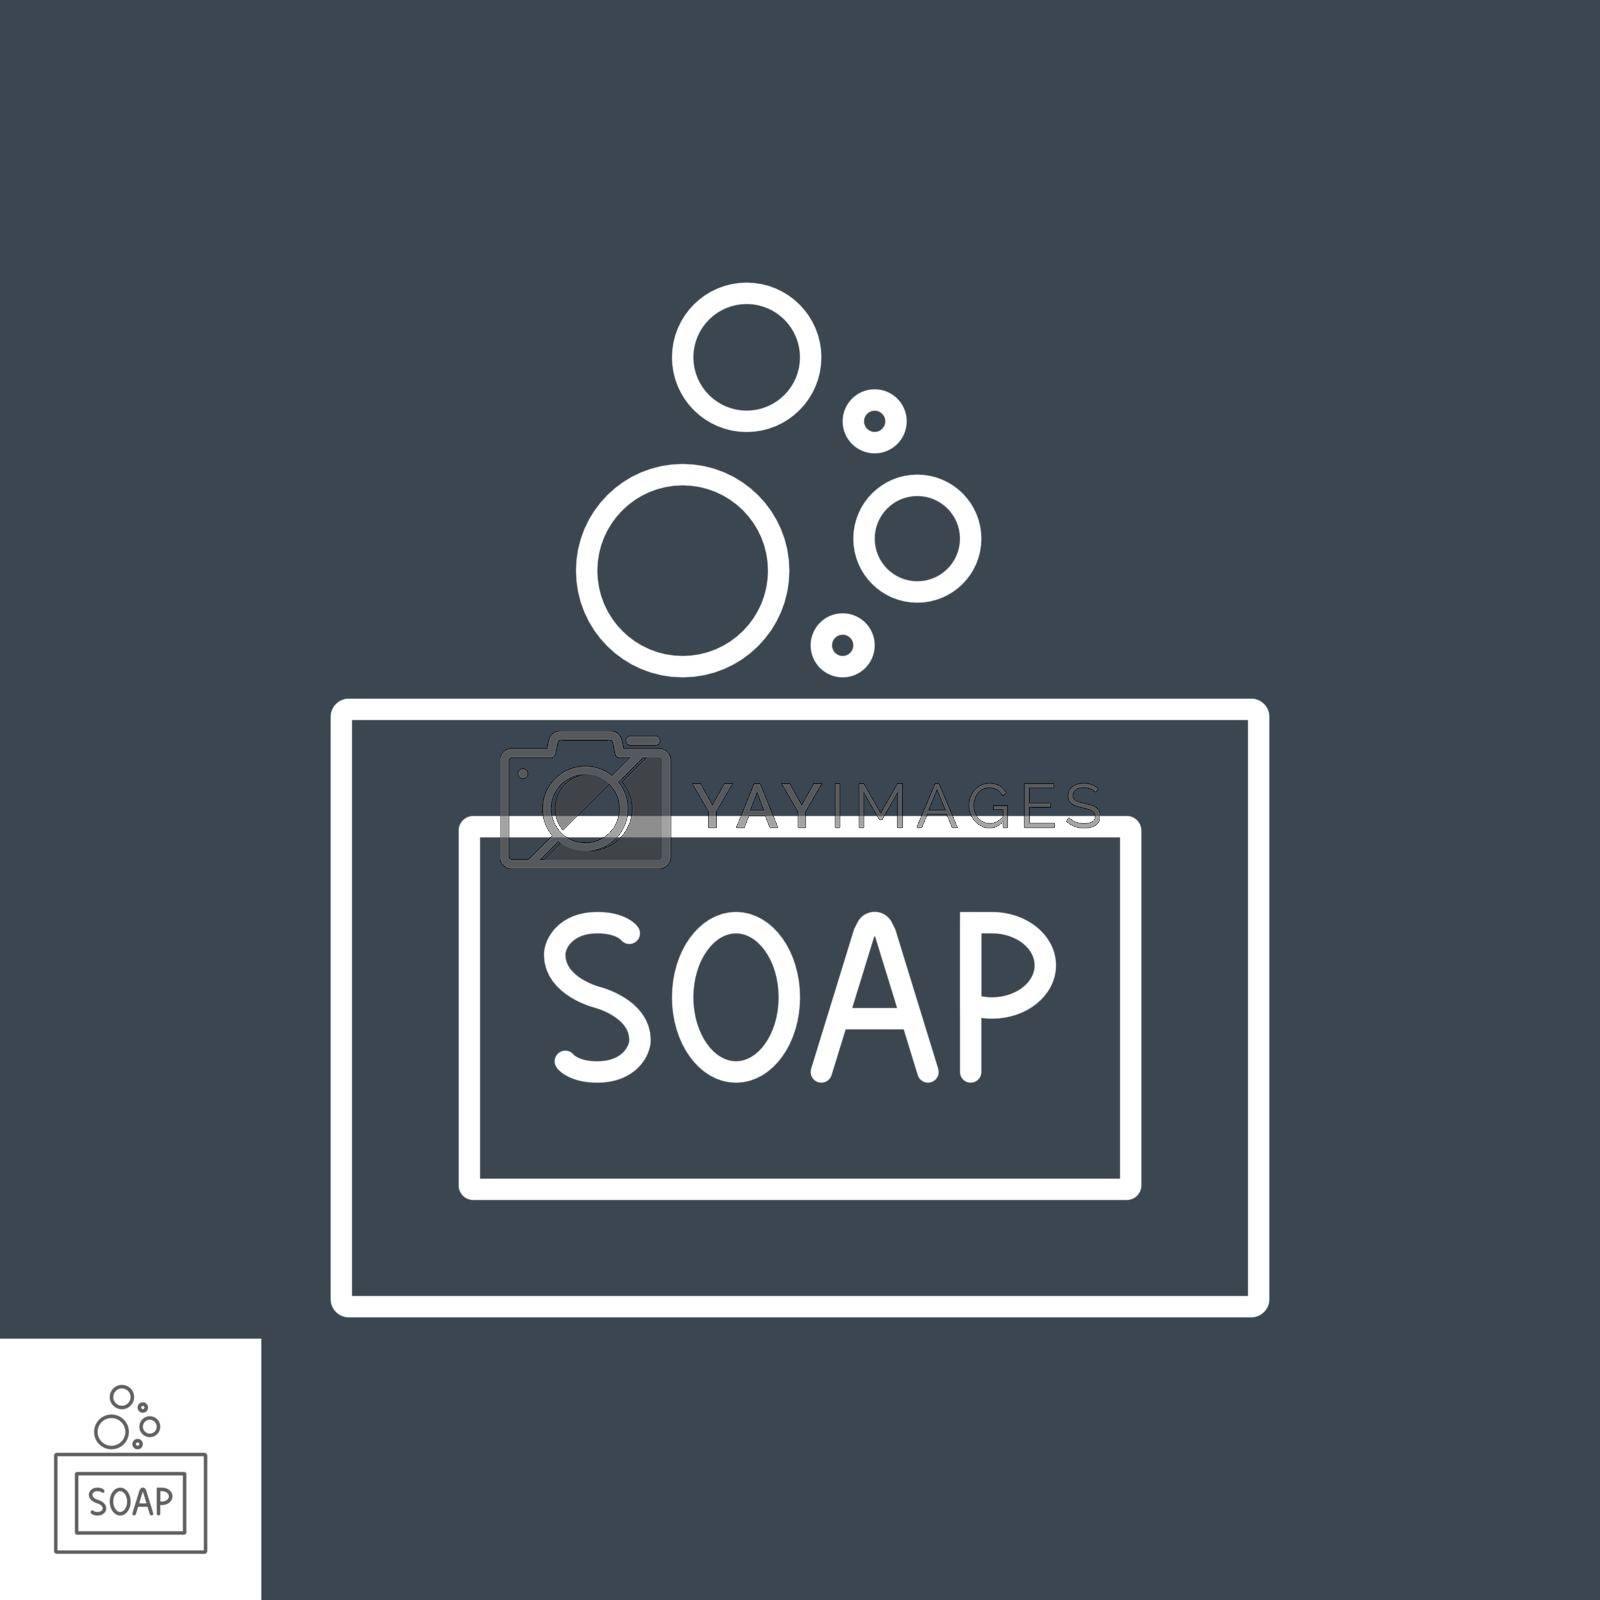 Soap related vector thin line icon. Isolated on black background. Editable stroke. Vector illustration.